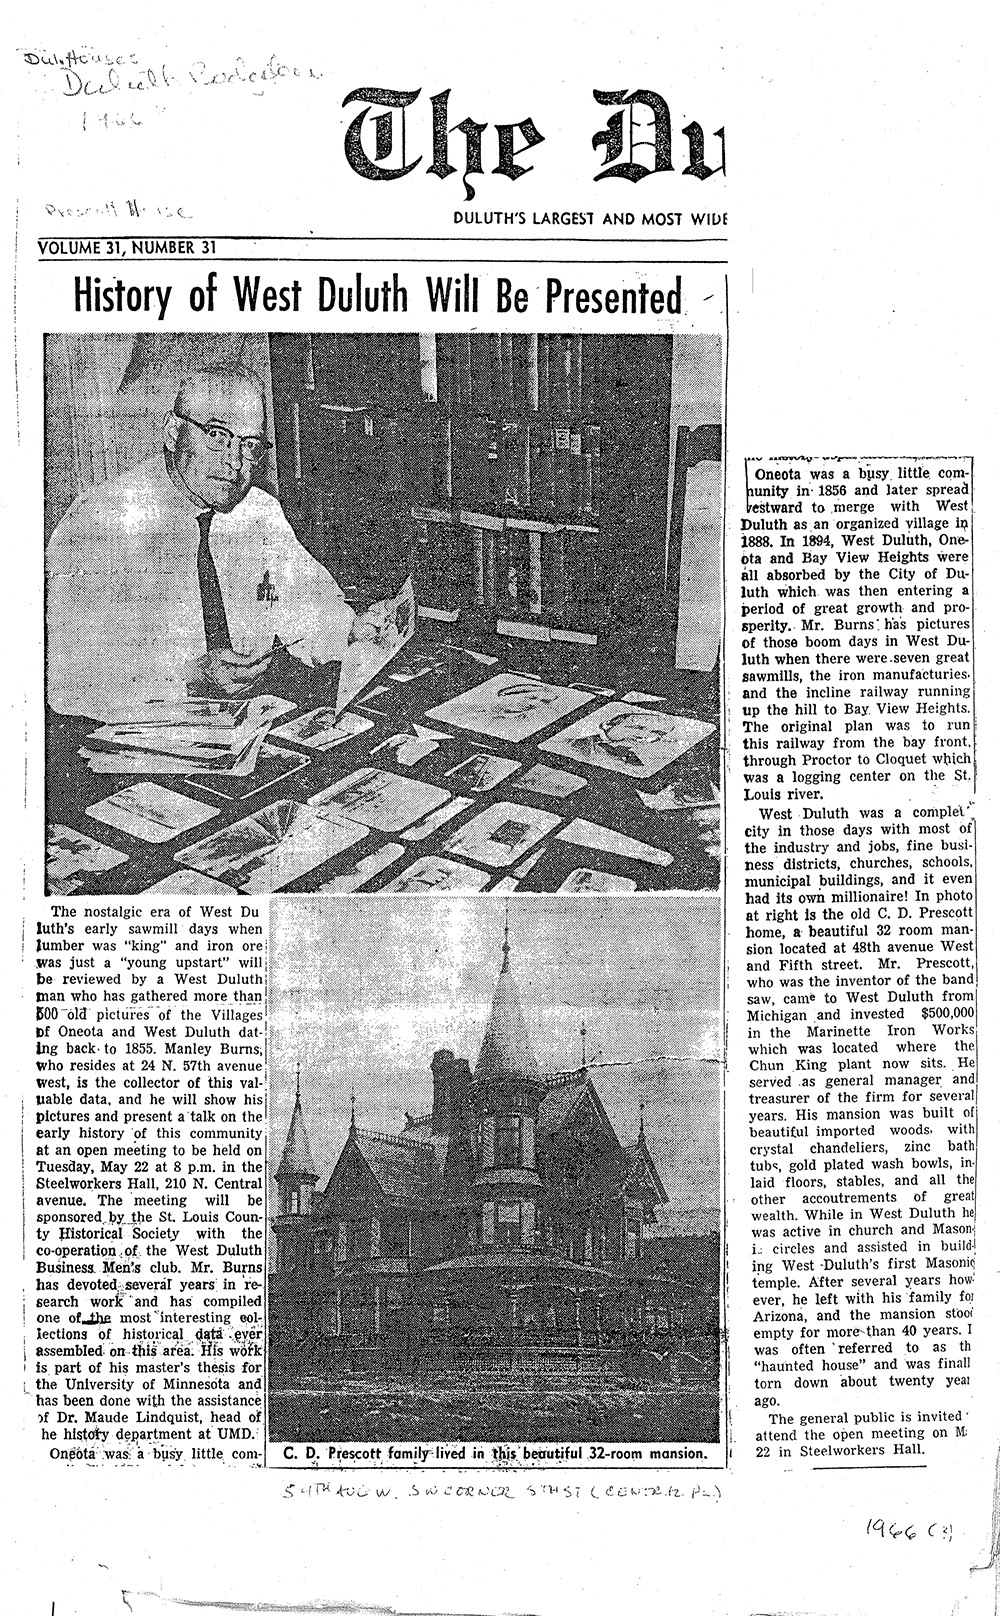 History of West Duluth - News article